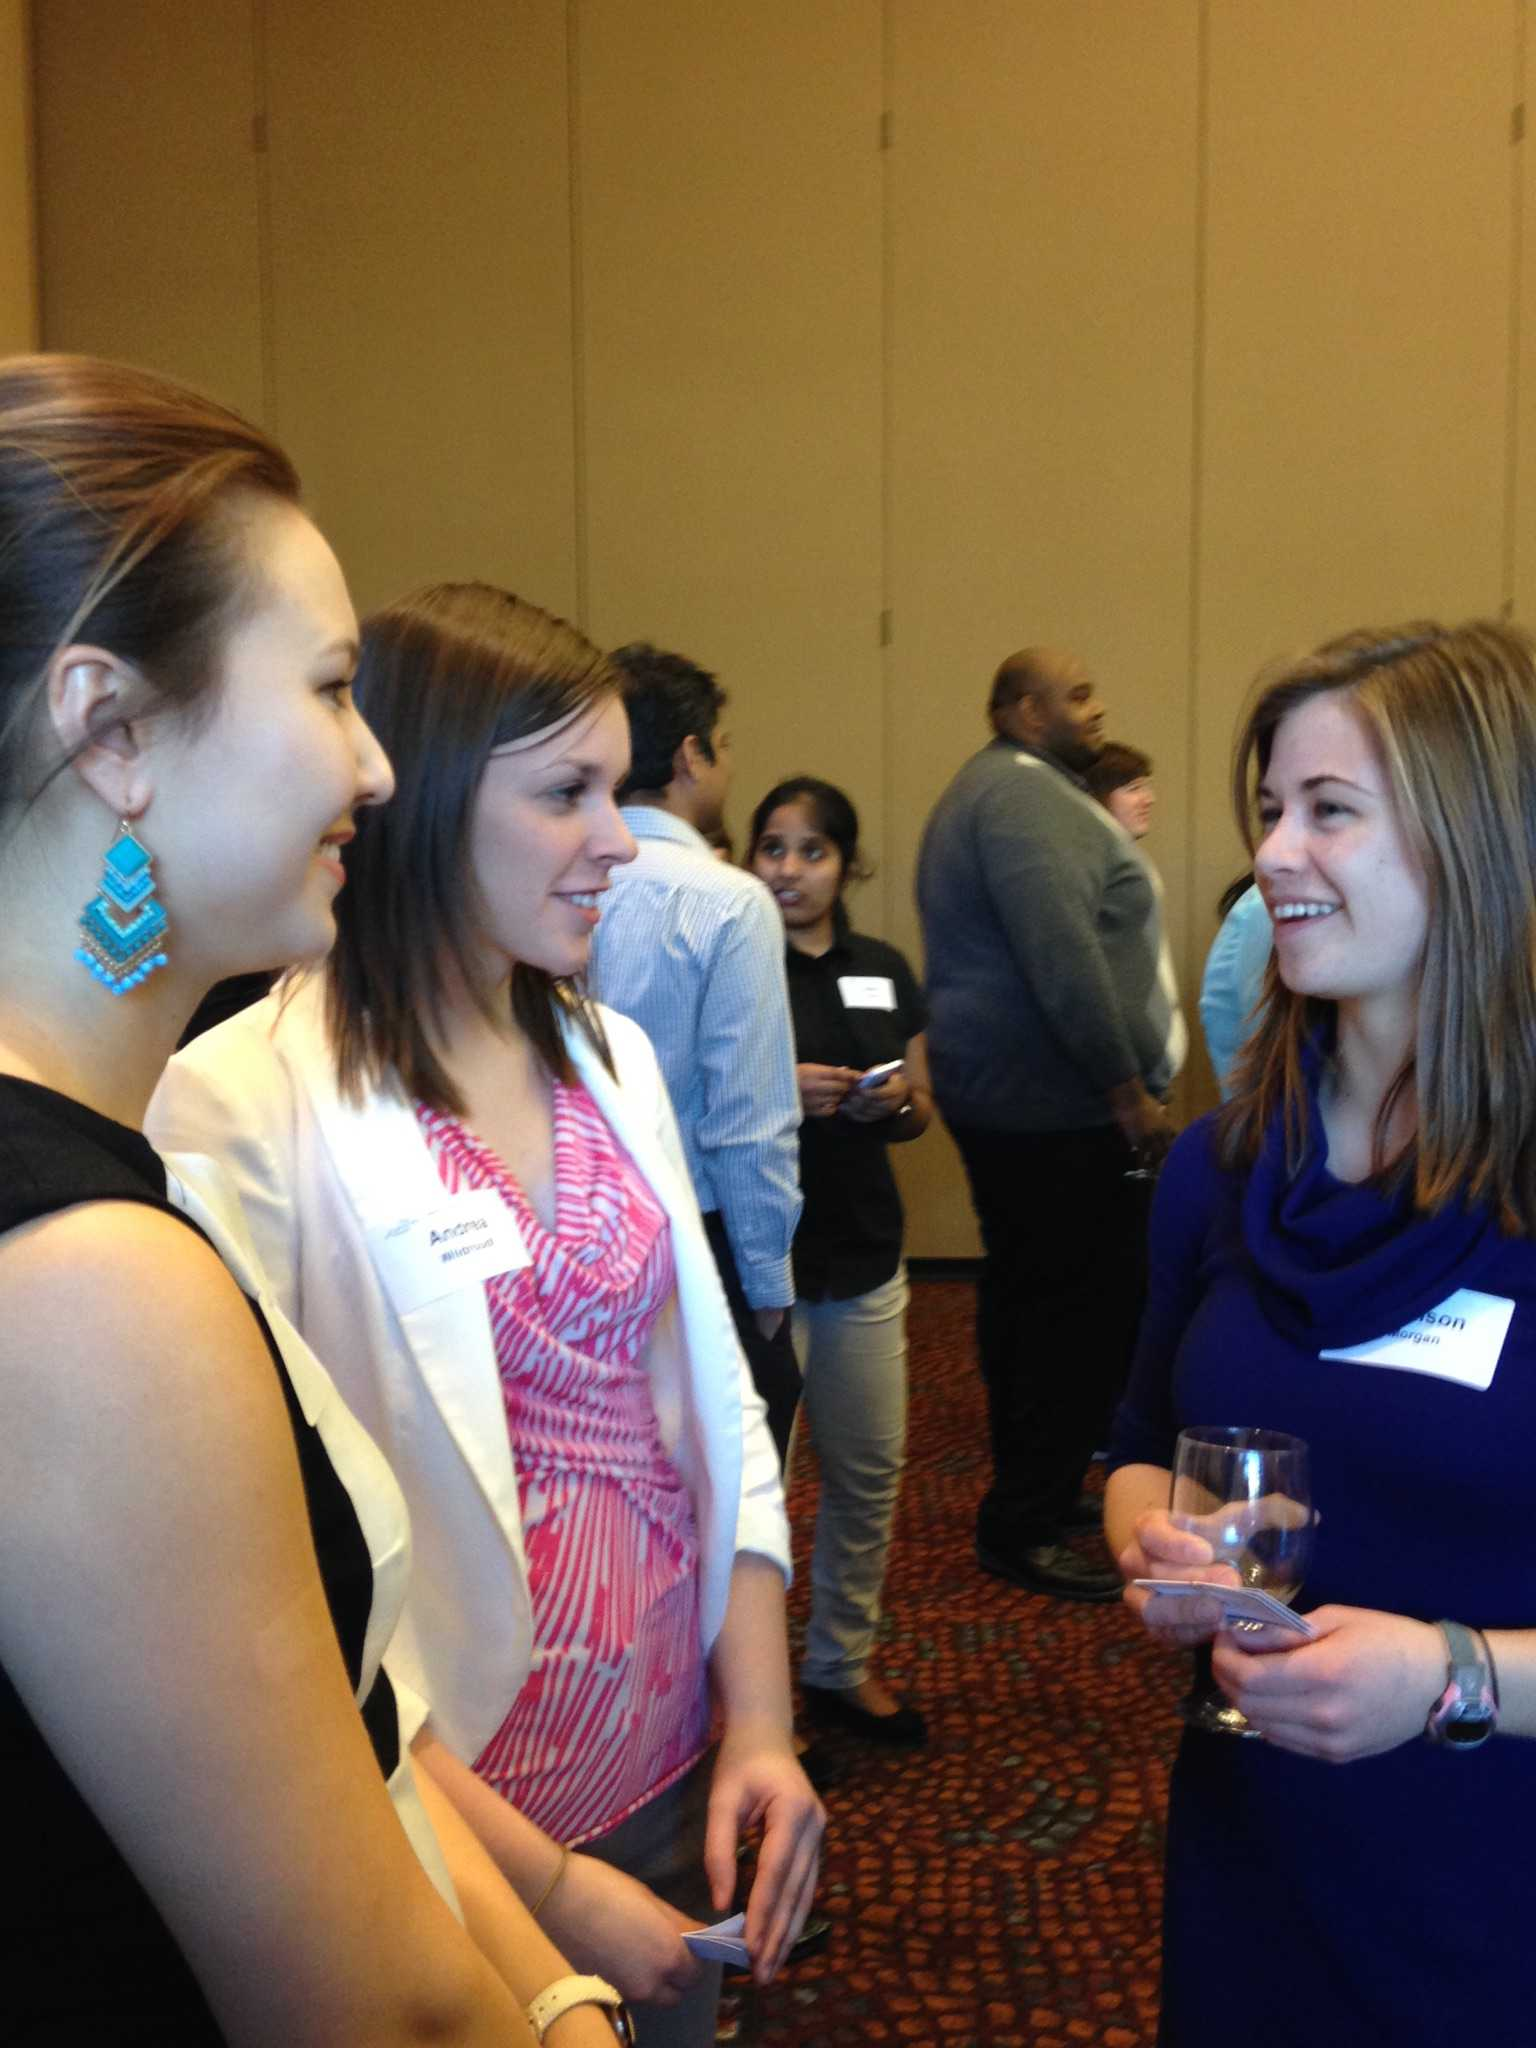 Students take the opportunity to meet and greet with employers at the Etiquette Dinner.